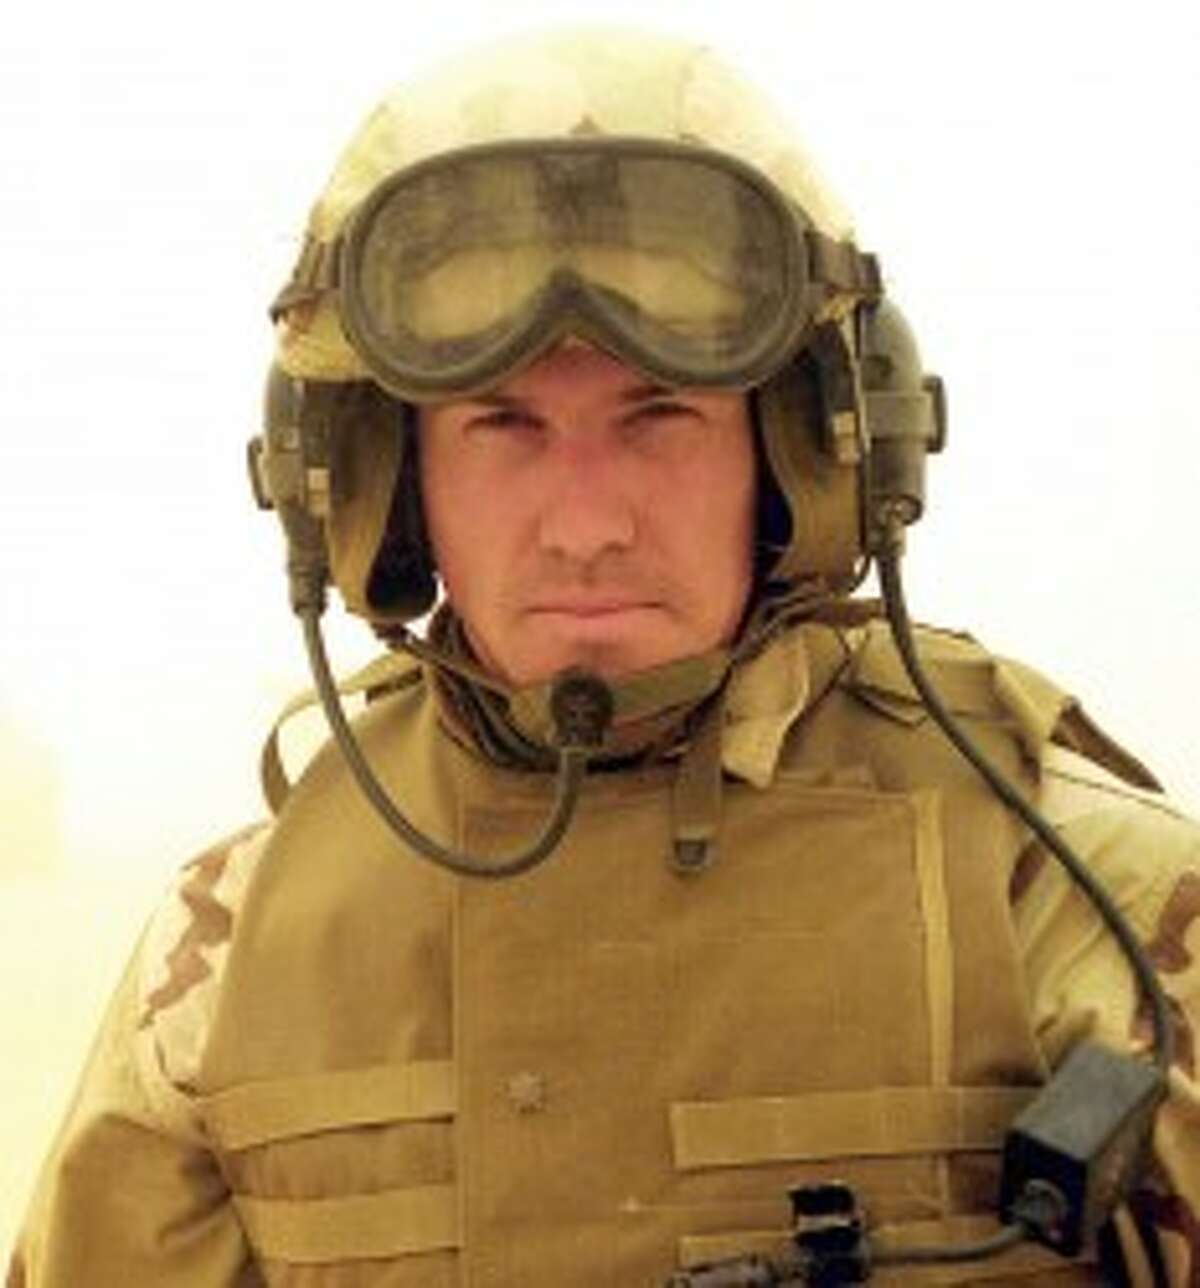 ON THE FIELD: Busch spent two tours of combat in Iraq as a U.S. Marine Corps Infantry Officer.